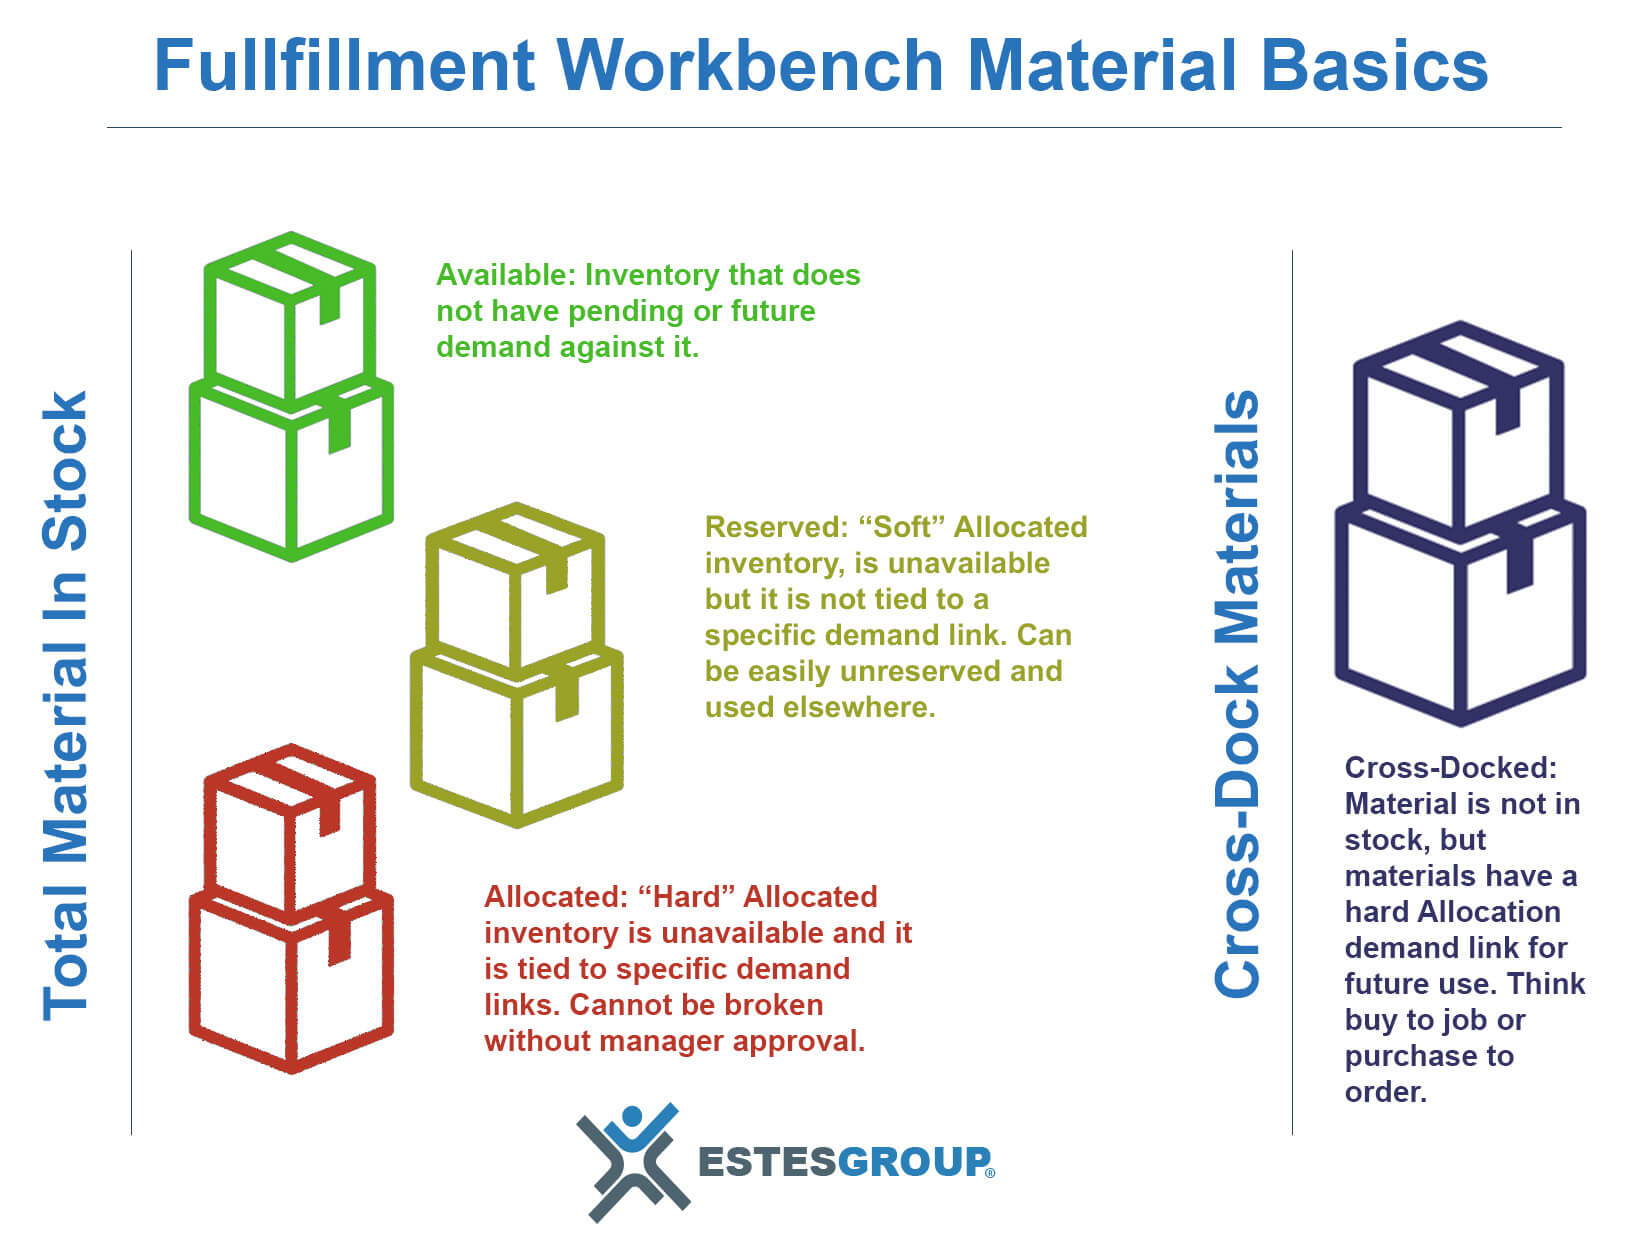 How To Manage Inventory Using Epicor's Fulfillment Workbench